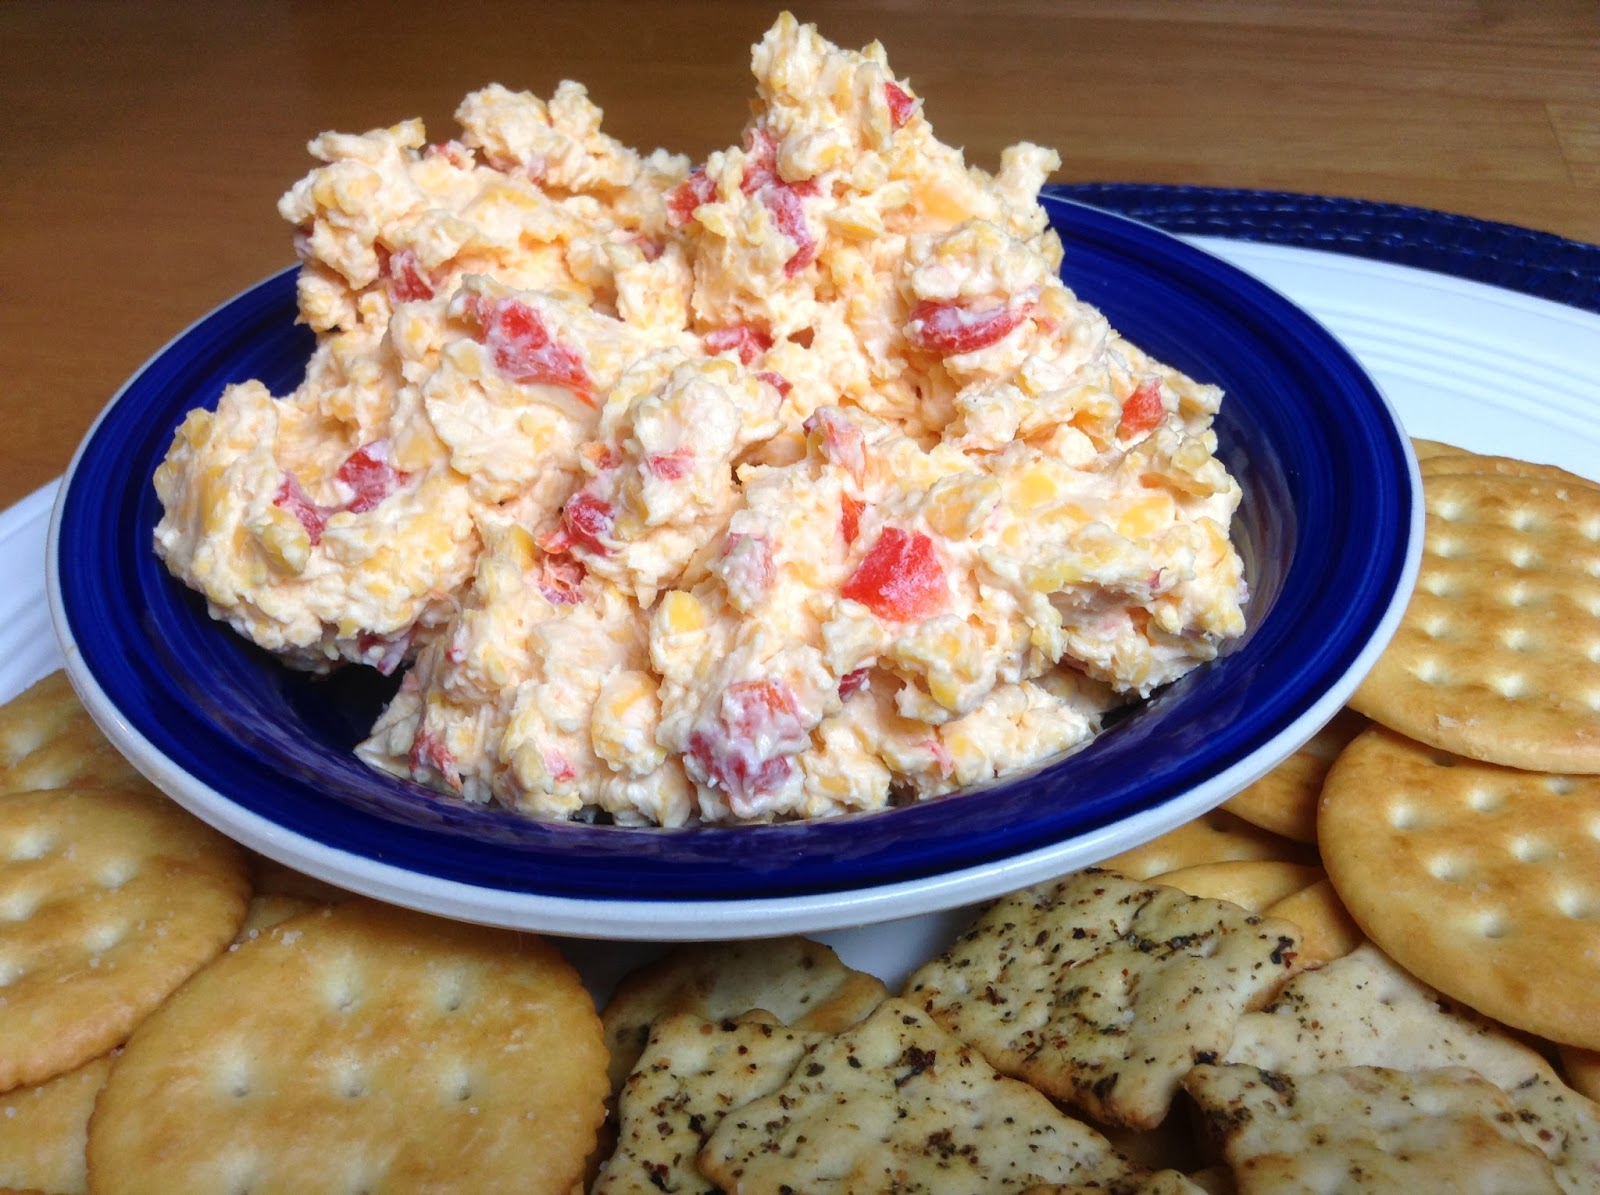 Laura's Baking Talent: Pimento Cheese Spread